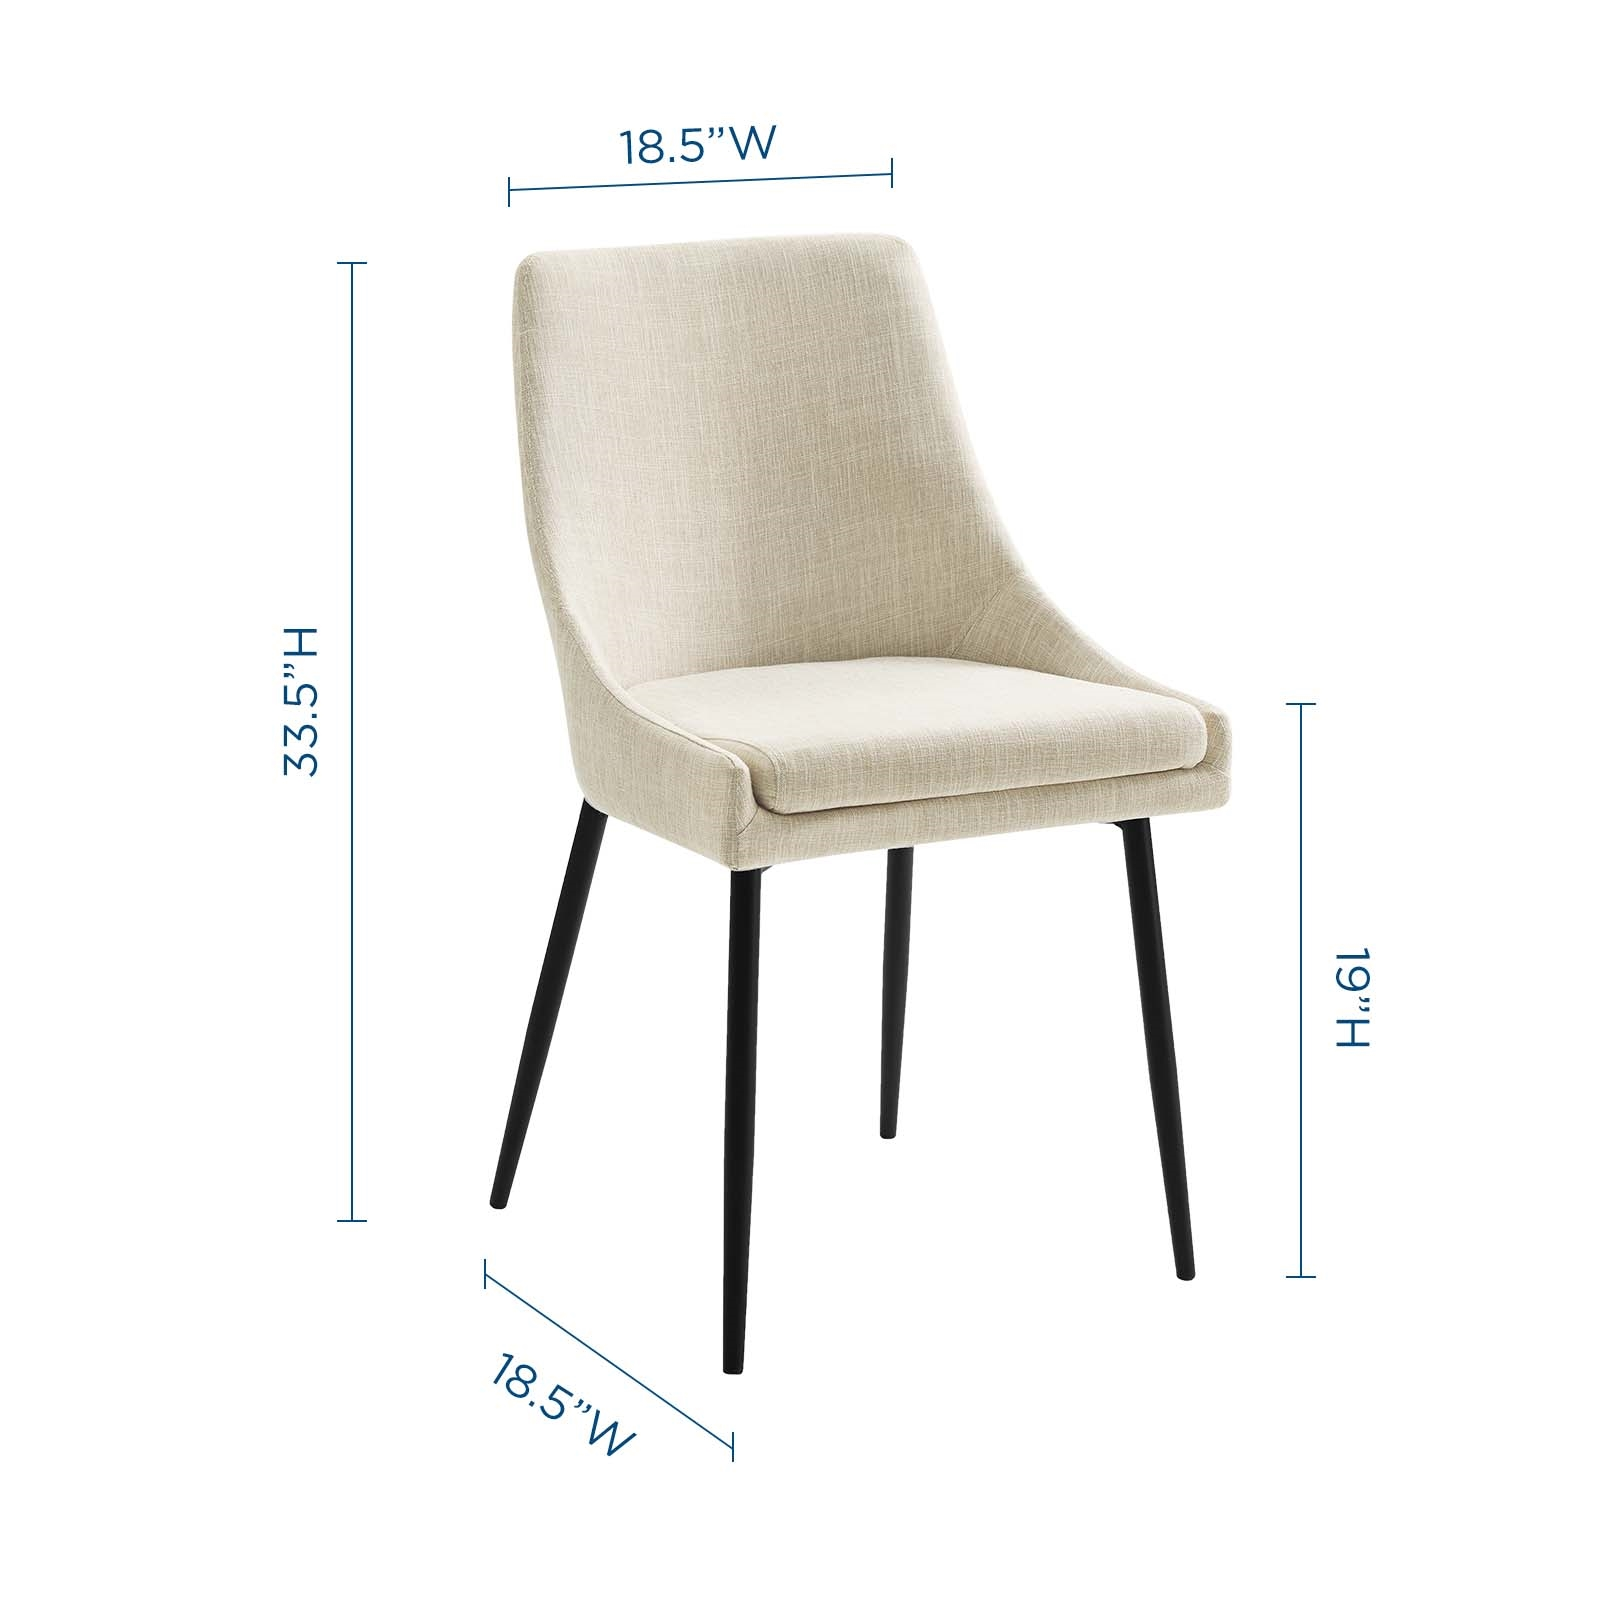 Viscount Upholstered Fabric Dining Chairs - Set of 2 in Black Beige